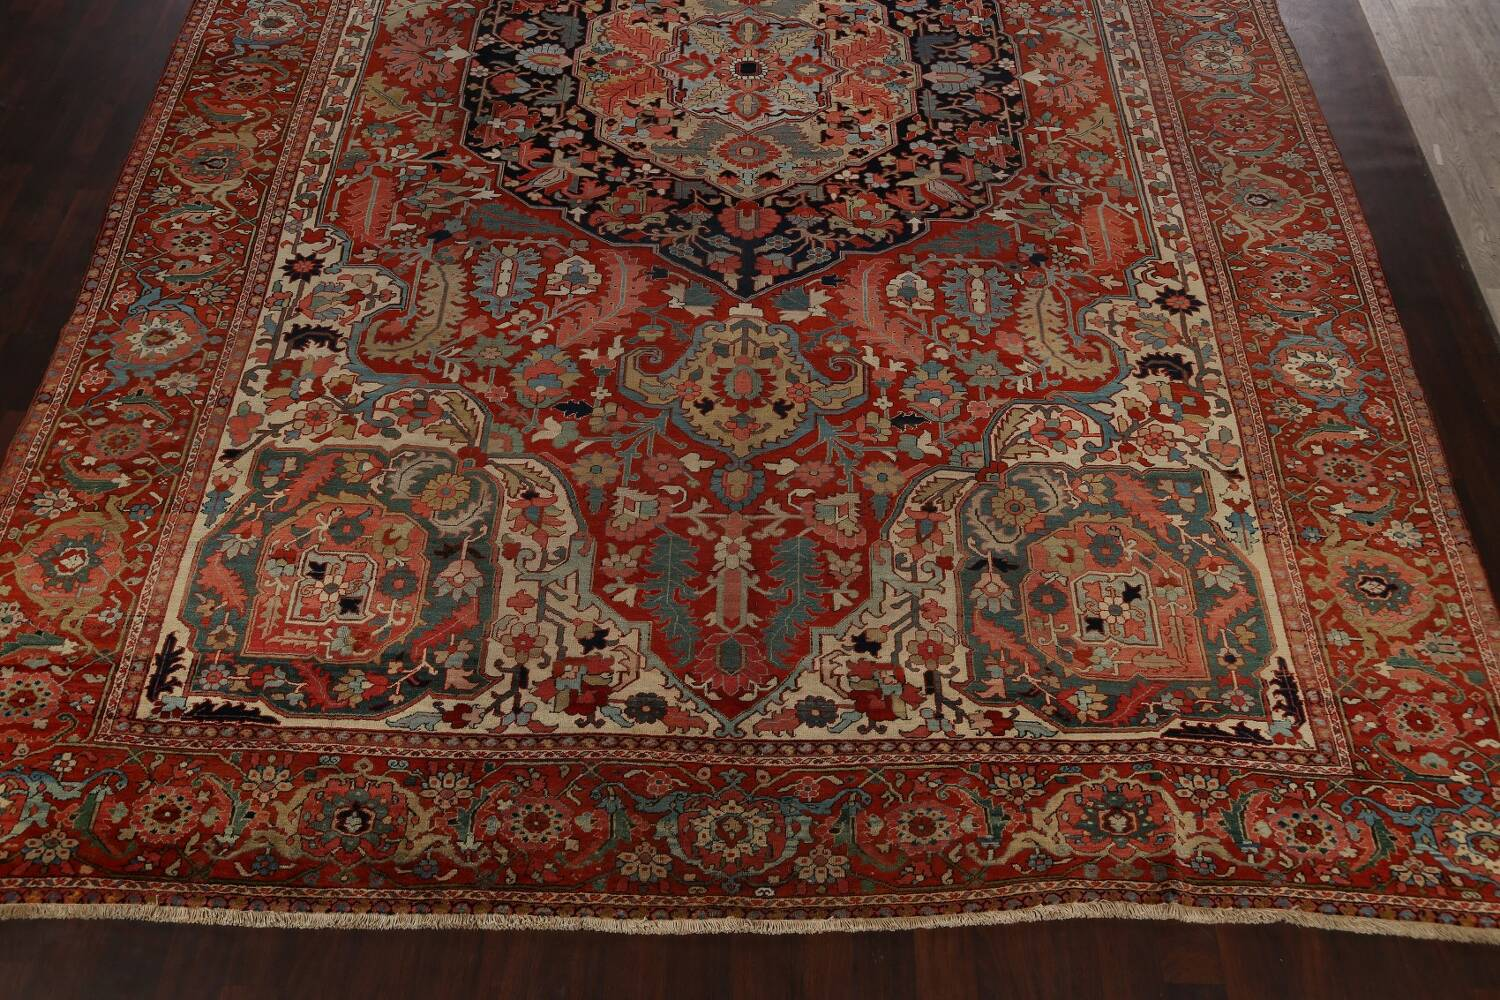 Antique Heriz Serapi Vegetable Dye Persian Area Rug 12x19 image 8